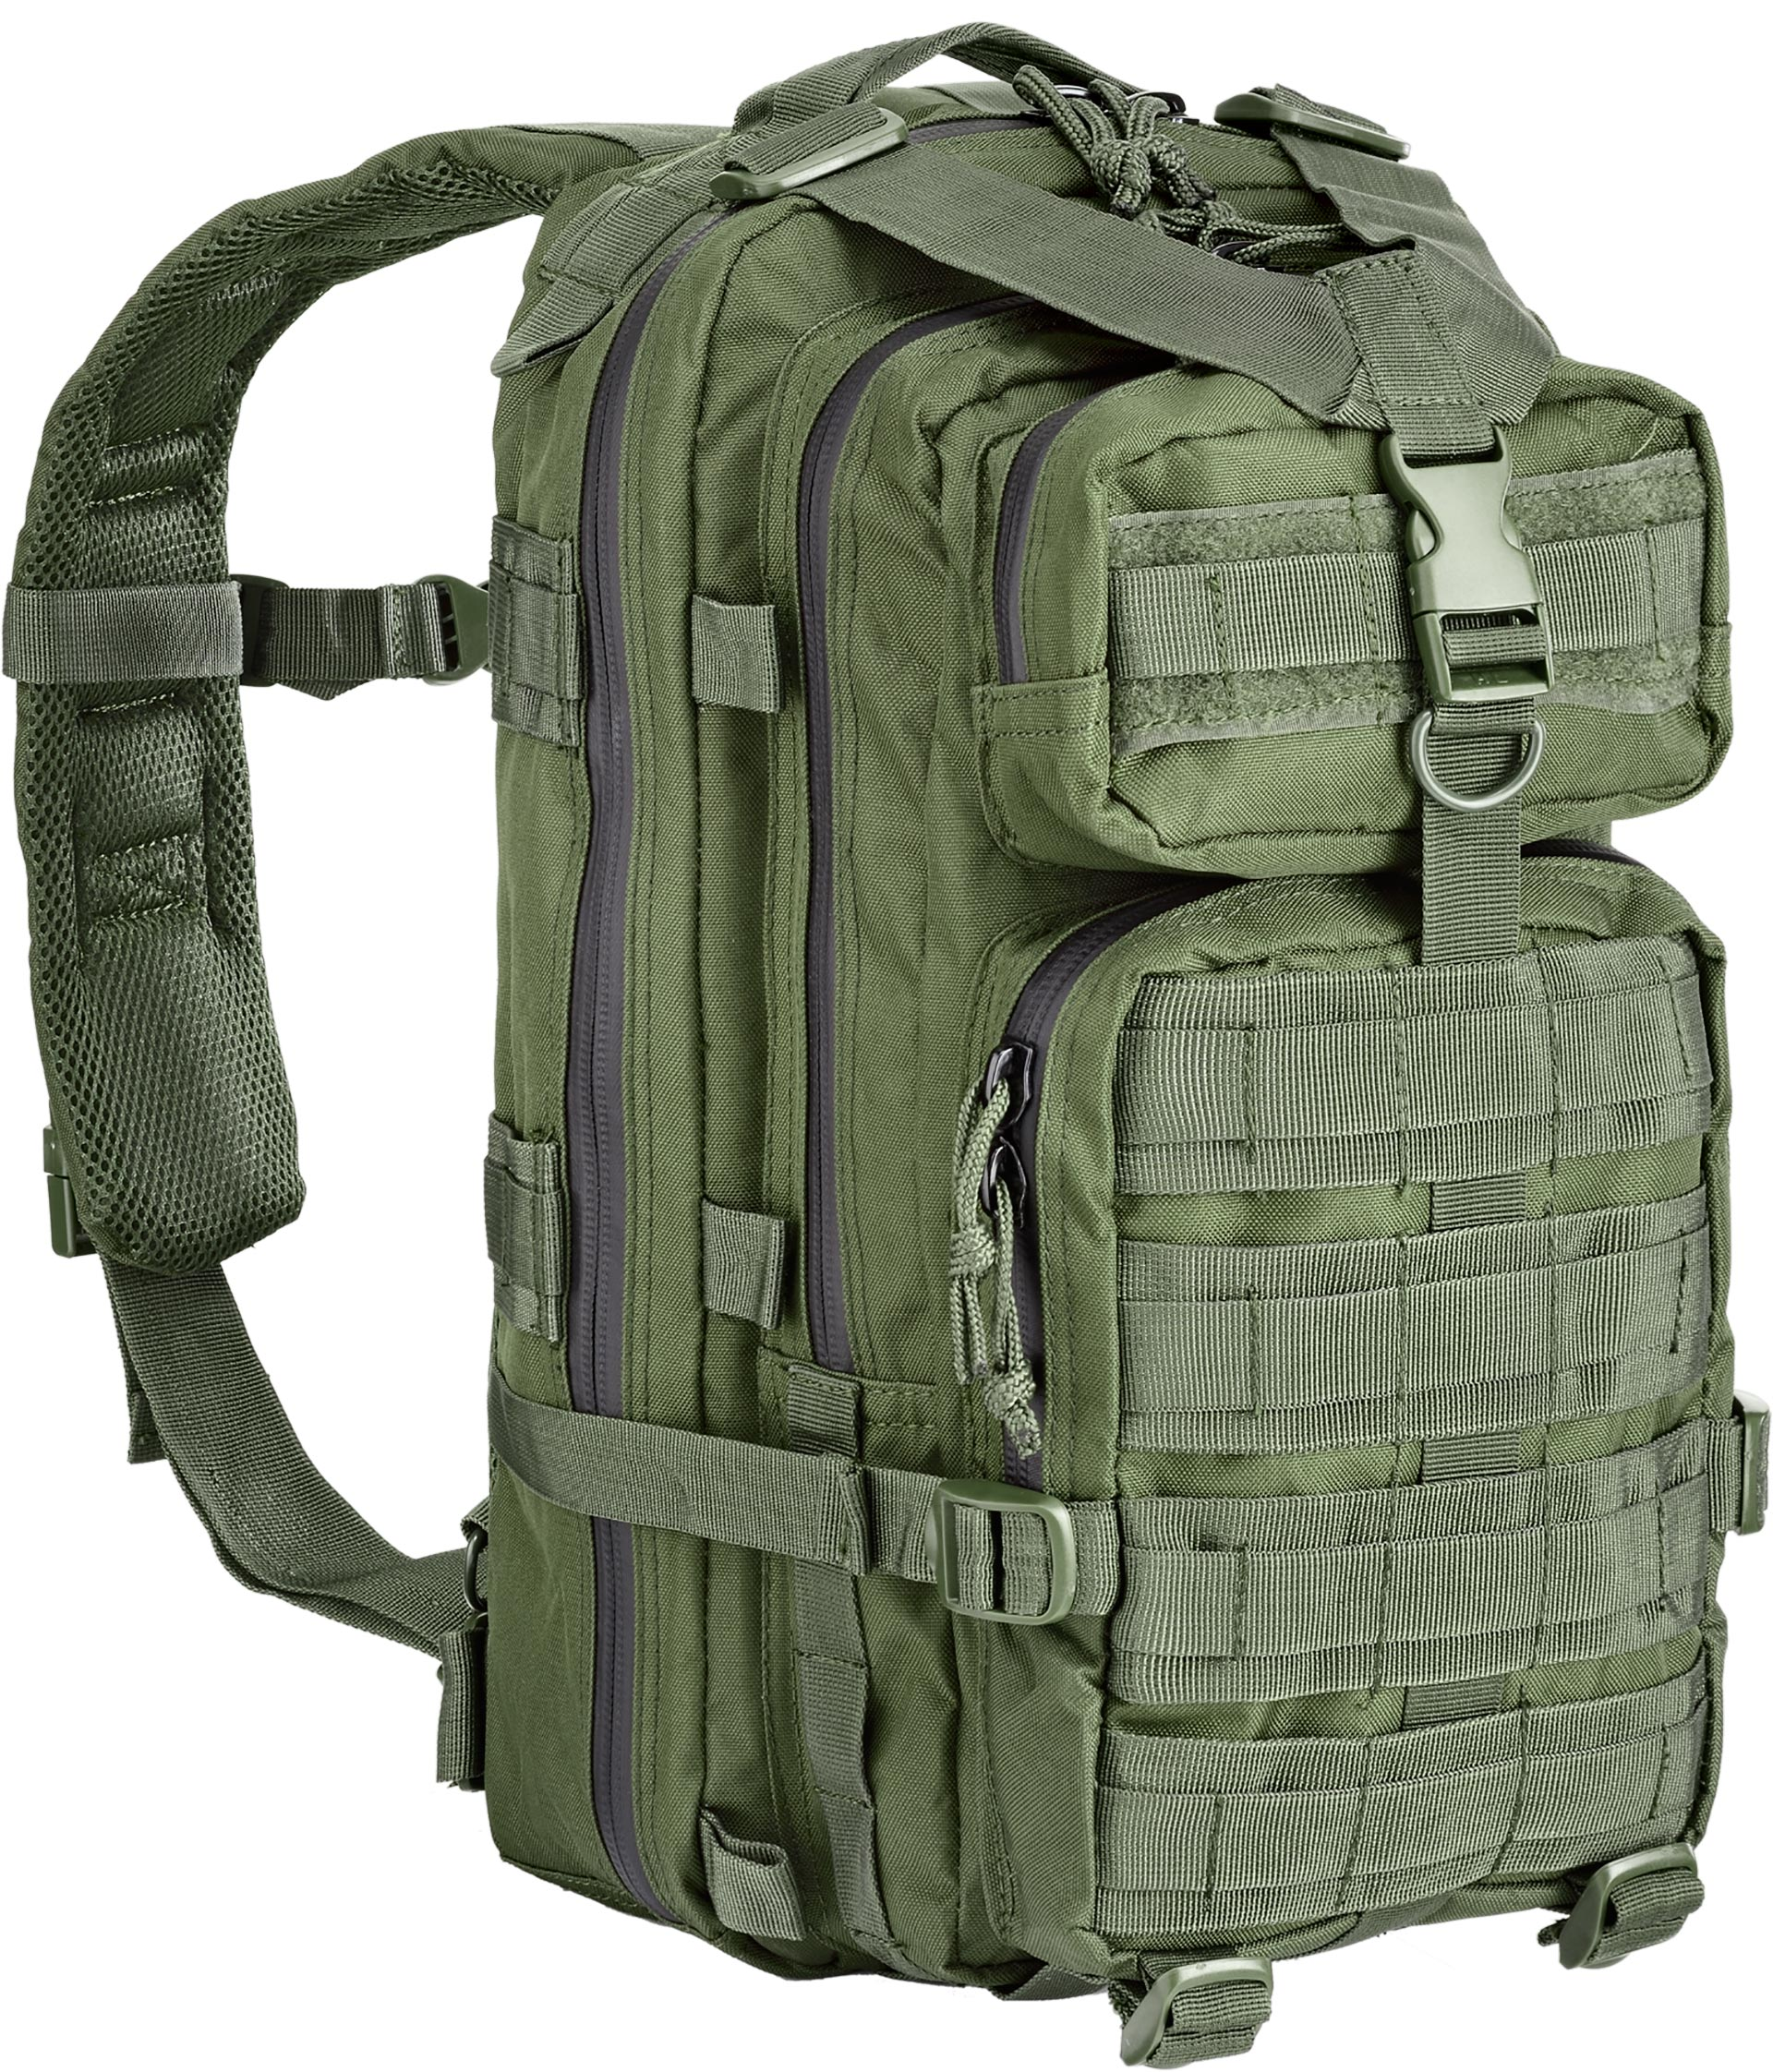 ZAINO - TACTICAL BACK PACK D5 GREEN